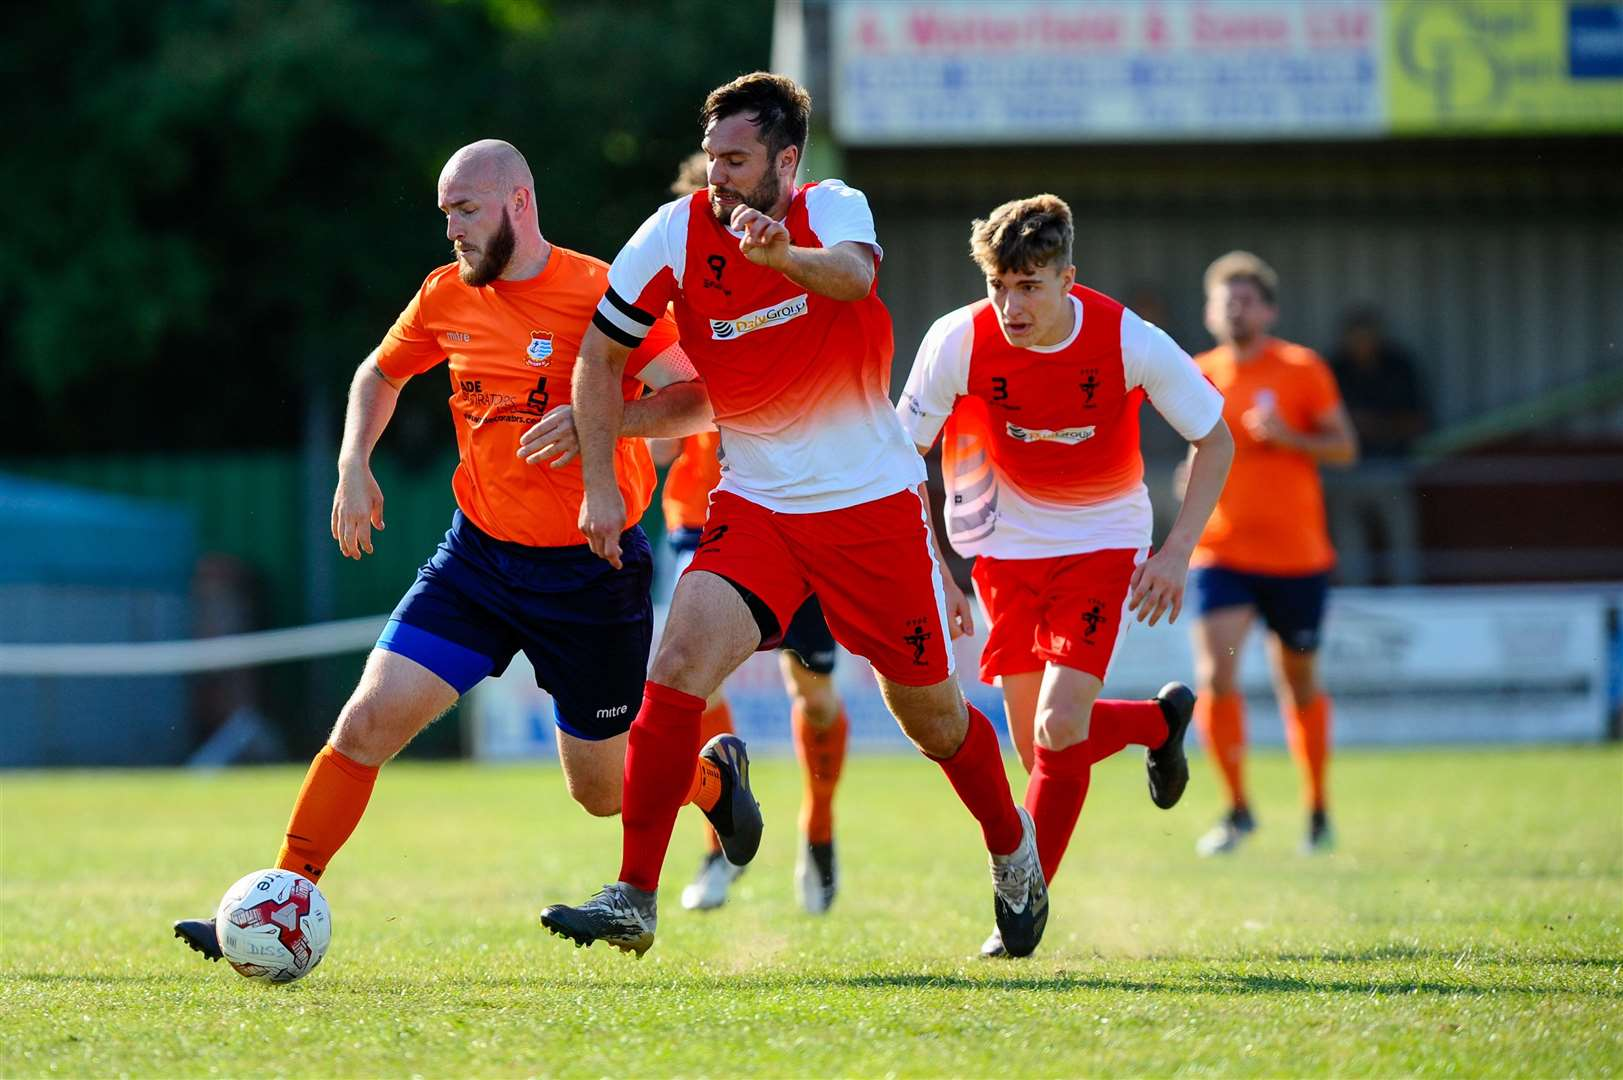 Diss, Norfolk, 19/09/2020..Football action from the FA Vase between Diss Town FC v Fakenham Town - Kyle Baker..Picture: Mark Bullimore Photography. (42328597)